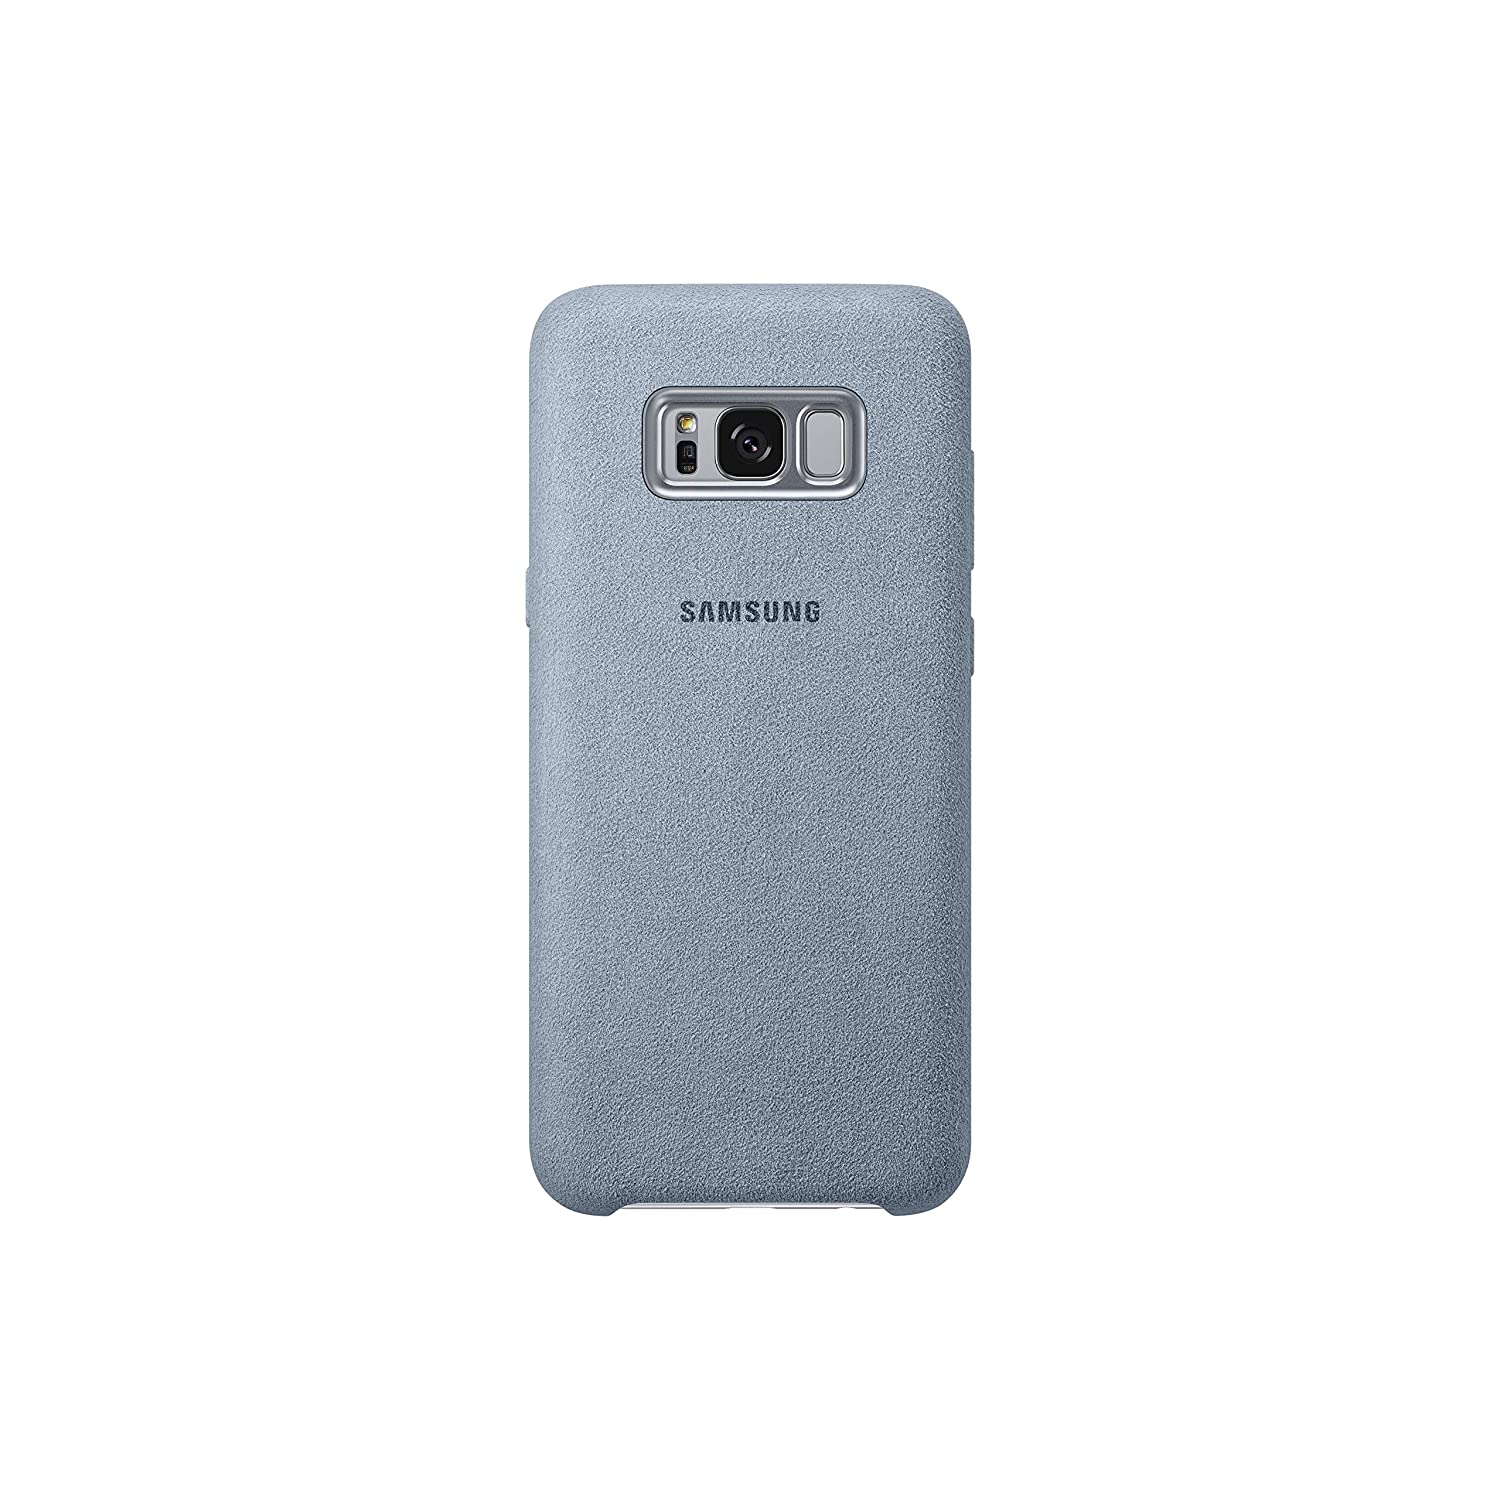 Genuine Samsung Alcantara Cover Case for Samsung Galaxy S8+ / S8 Plus Mint EF-XG955AMEGWW